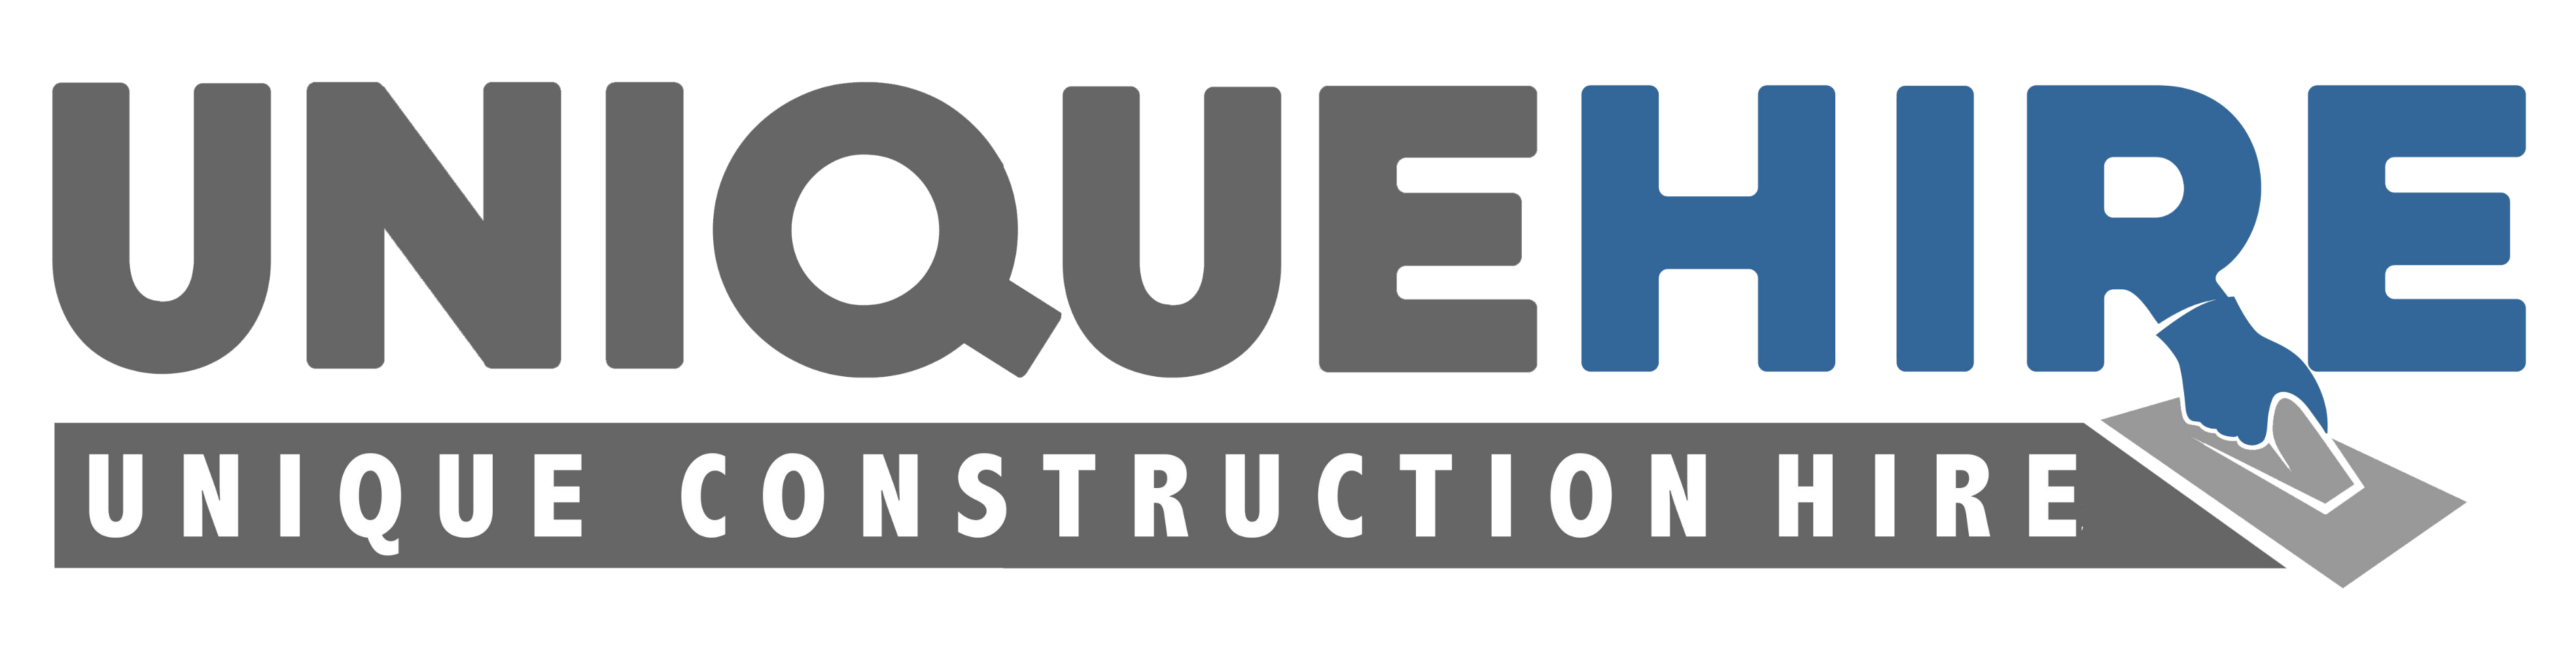 Unique Construction Hire